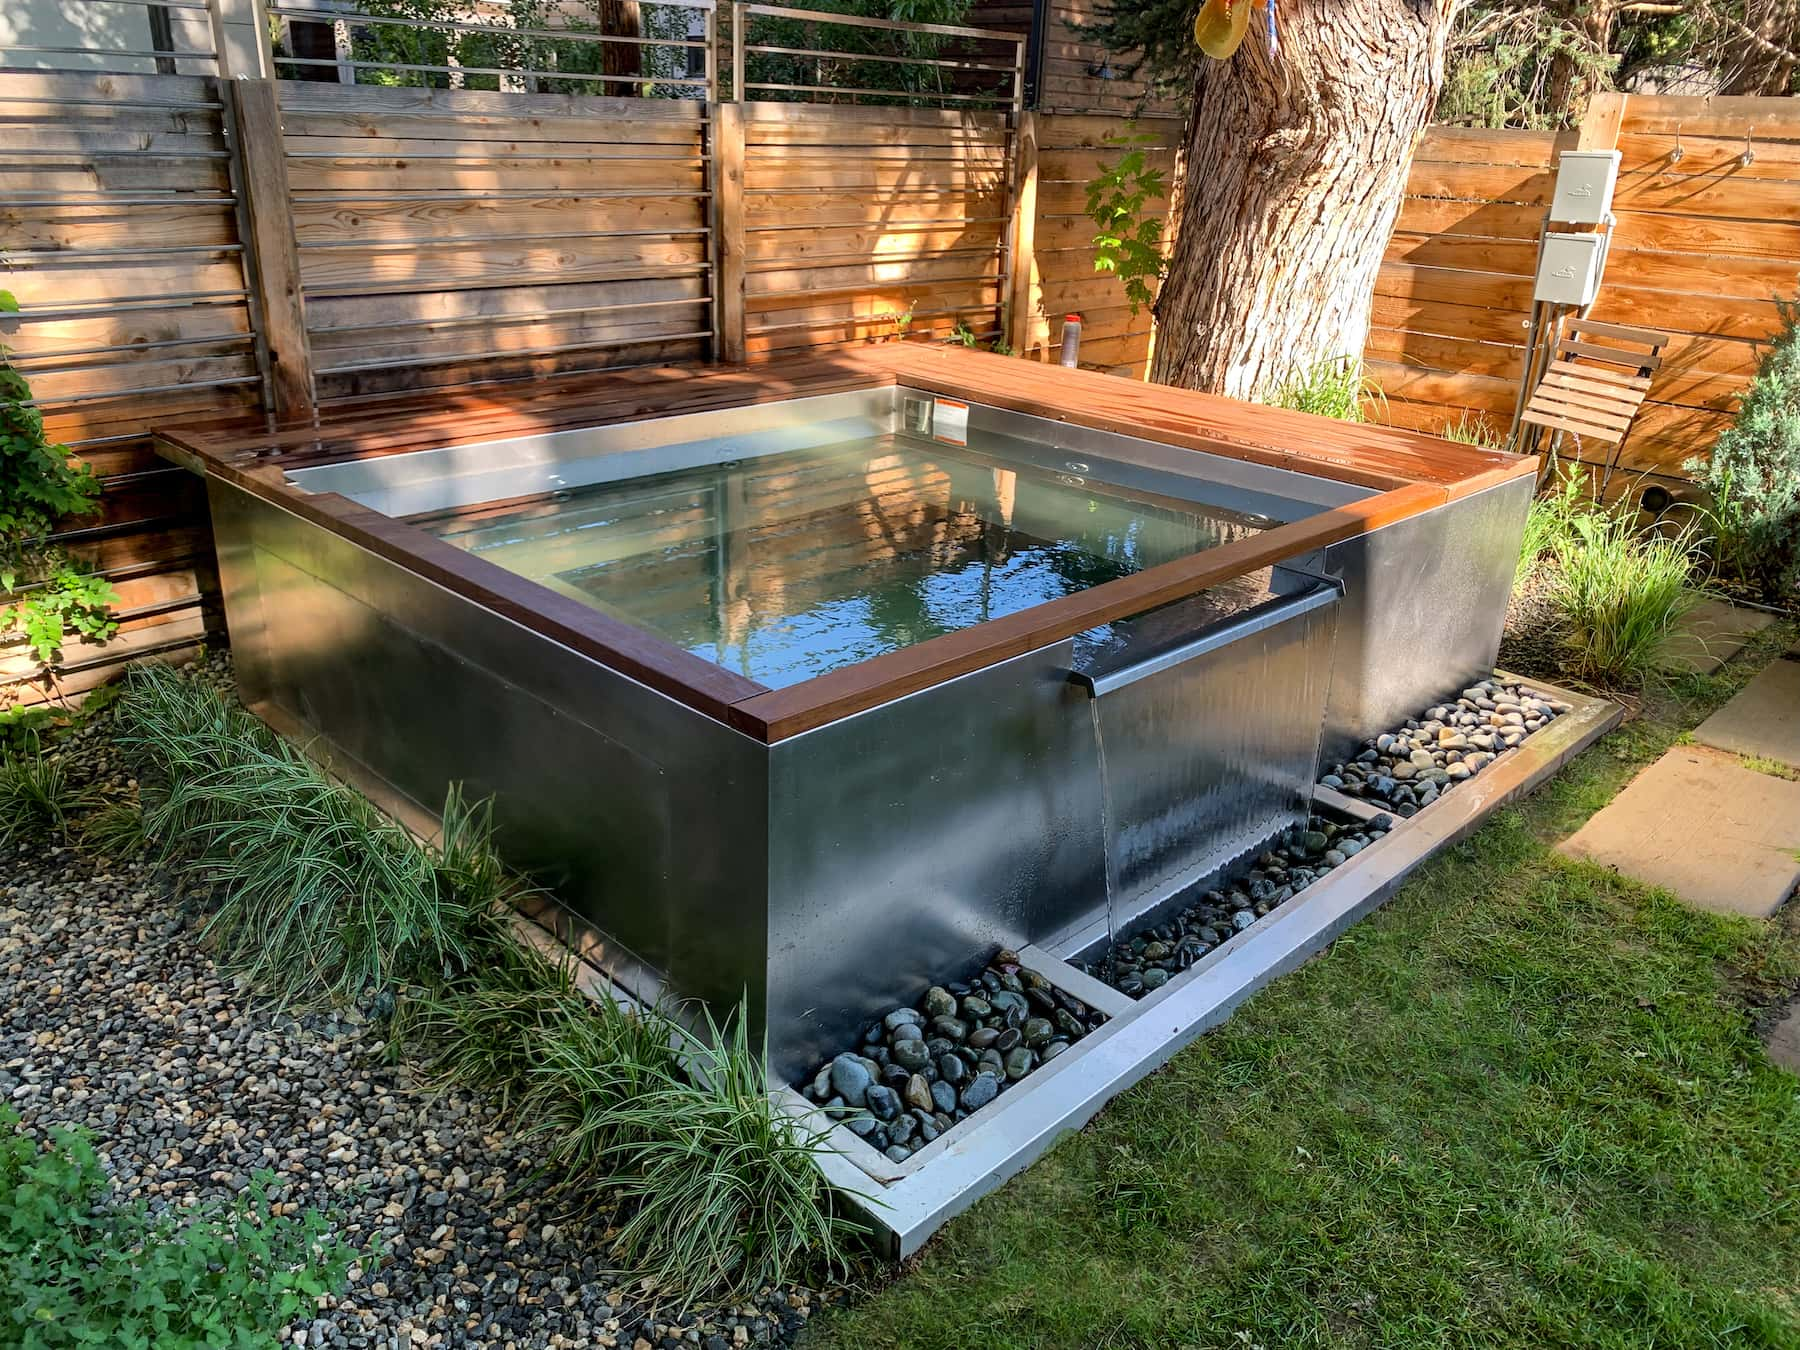 Waterfall Hot Tub With Bench Seating Bonnie Brae Denver CO